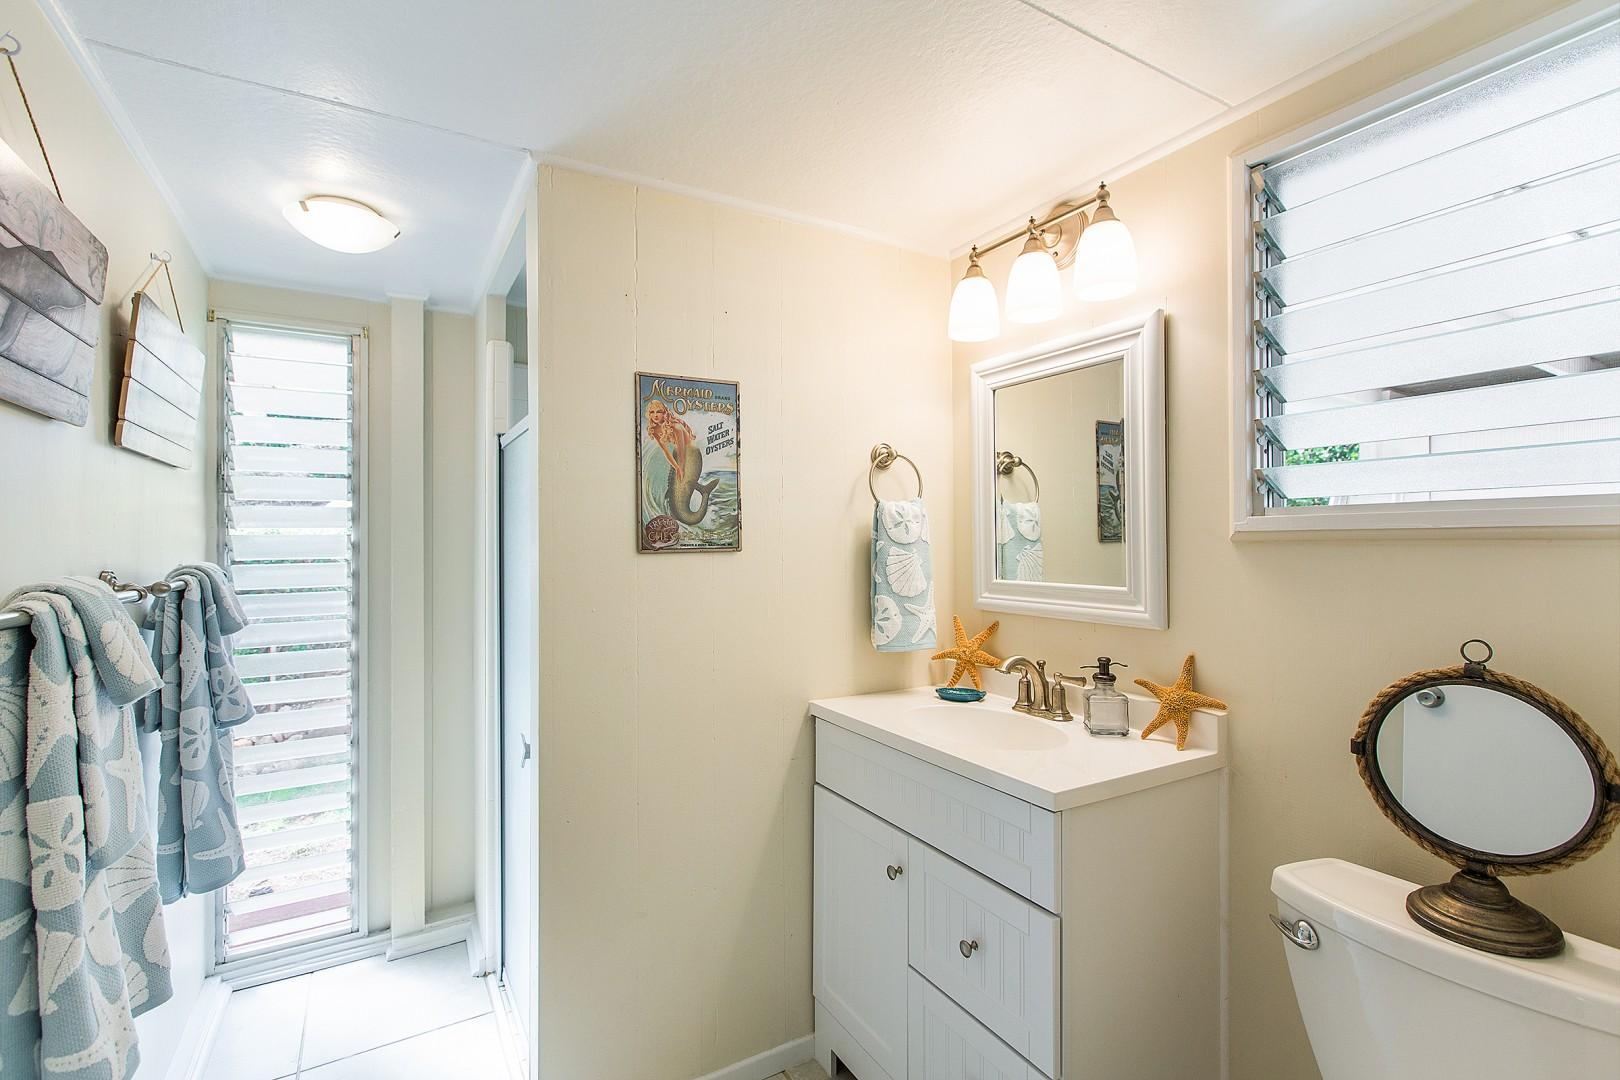 Bathroom off of back living/TV room and laundry room.